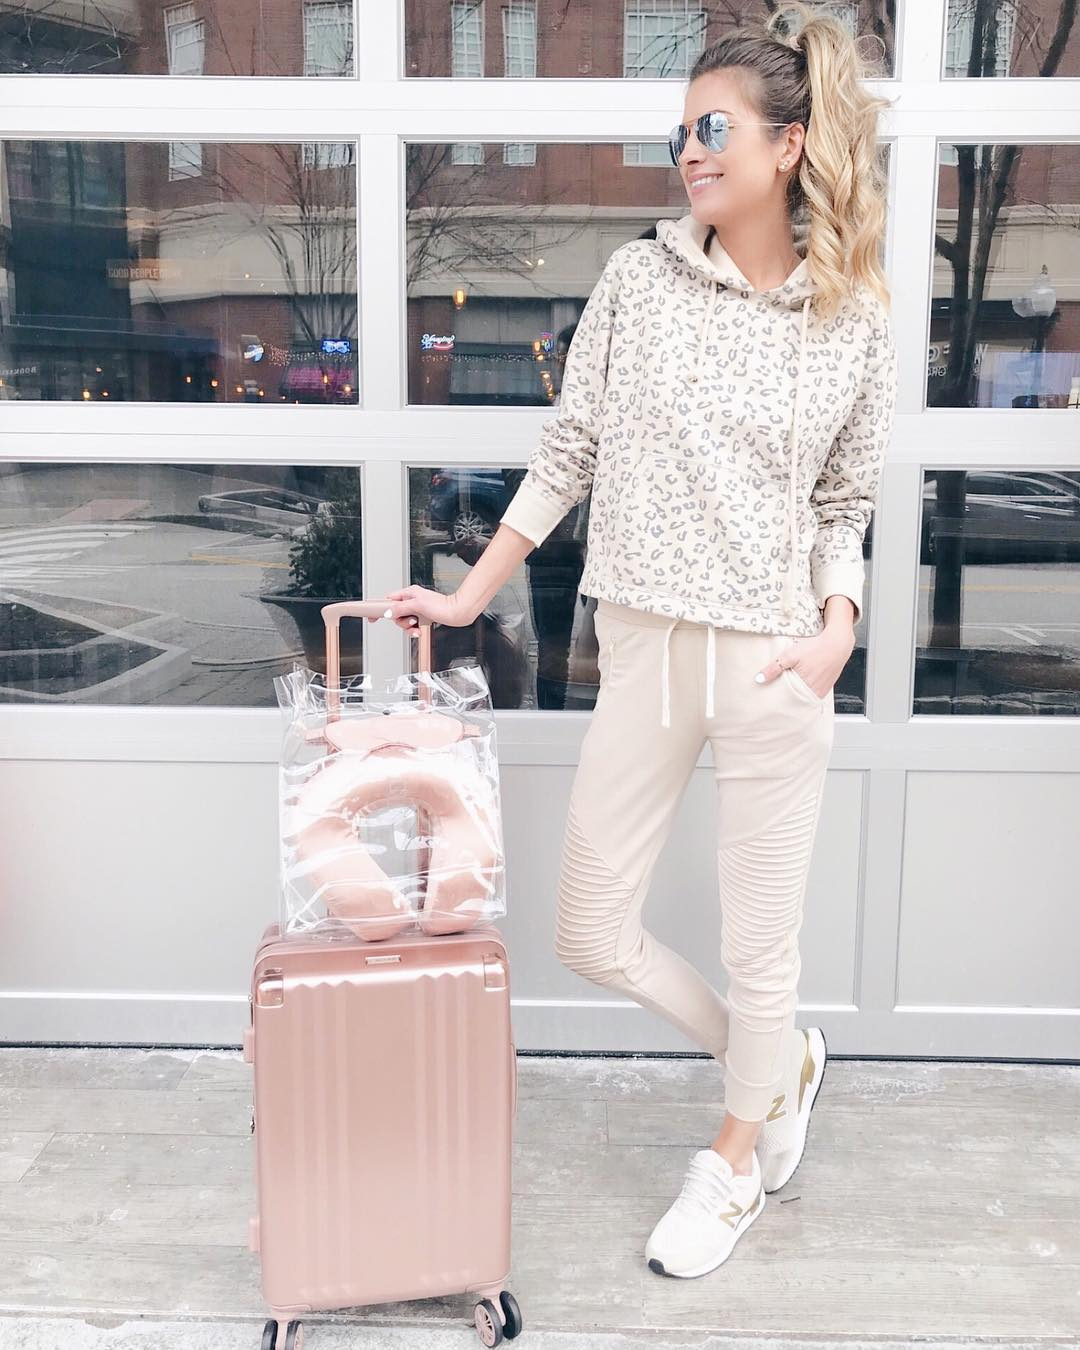 Never leaving for a destination without it! - @pinterestingplans